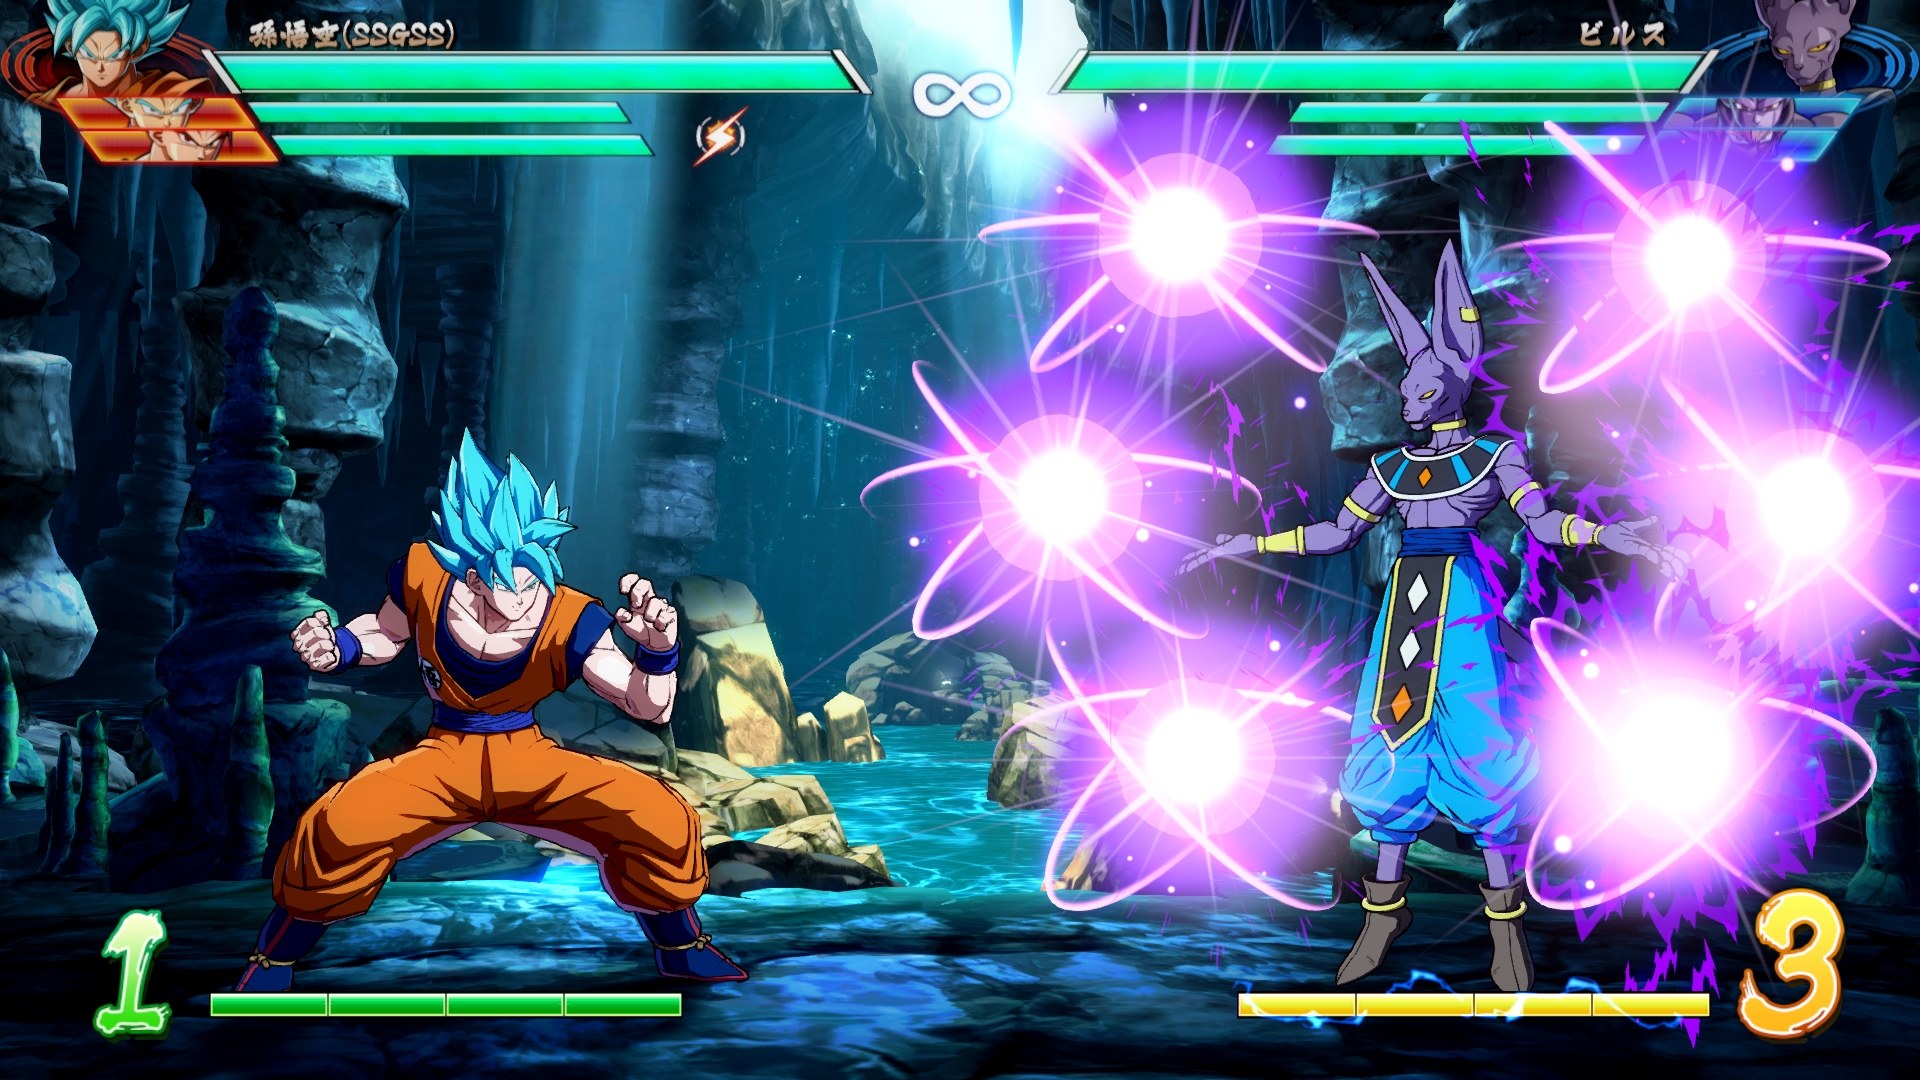 Dragon Ball FighterZ - hopefully Arc System Works' first mainstream hit